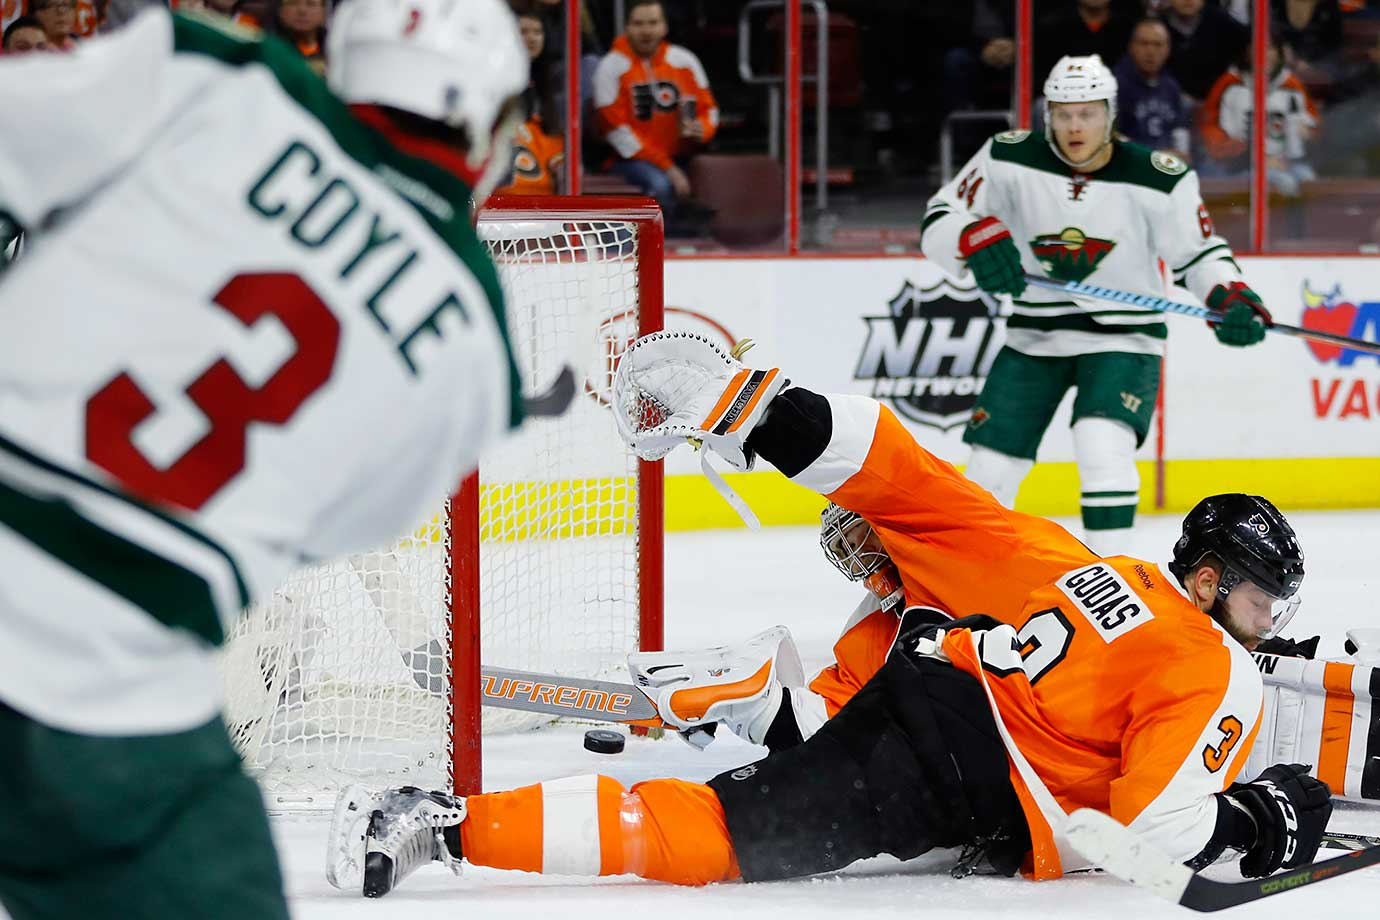 Philadelphia goaltender Michal Neuvirth makes a stick save against Charlie Coyle of Minnesota in the final seconds of a 3-2 win.